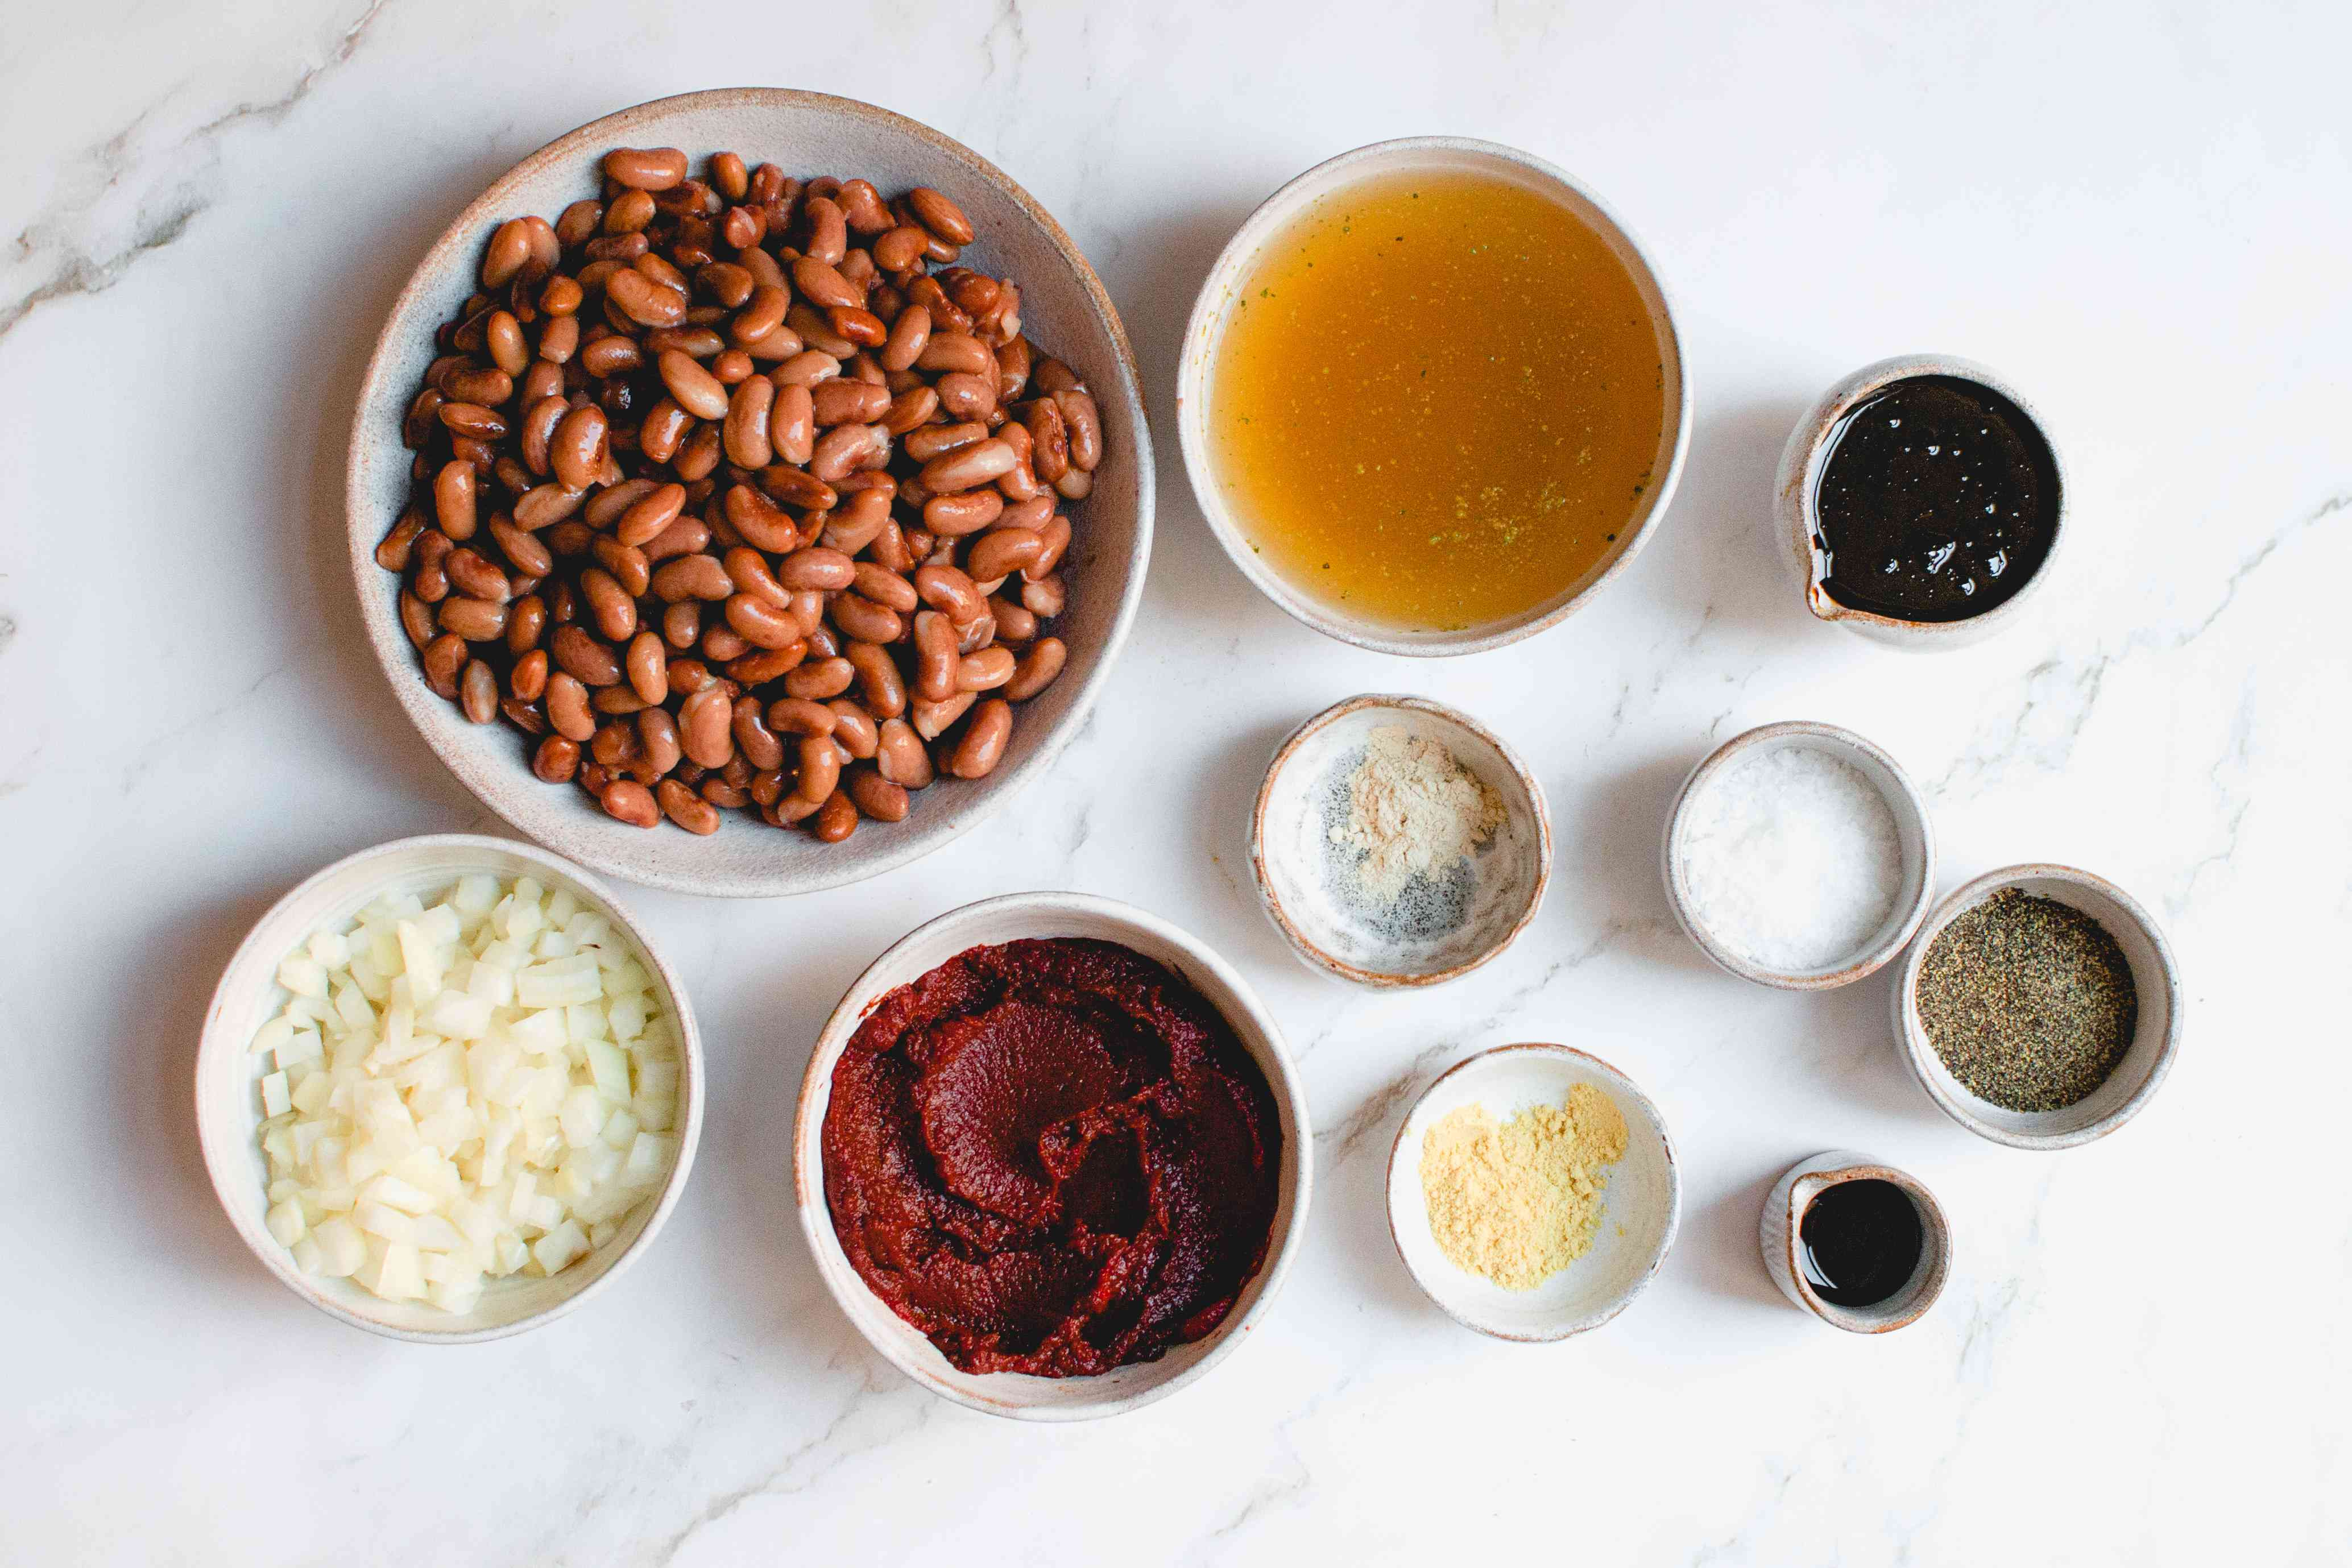 Vegetarian Boston baked beans with molasses ingredients